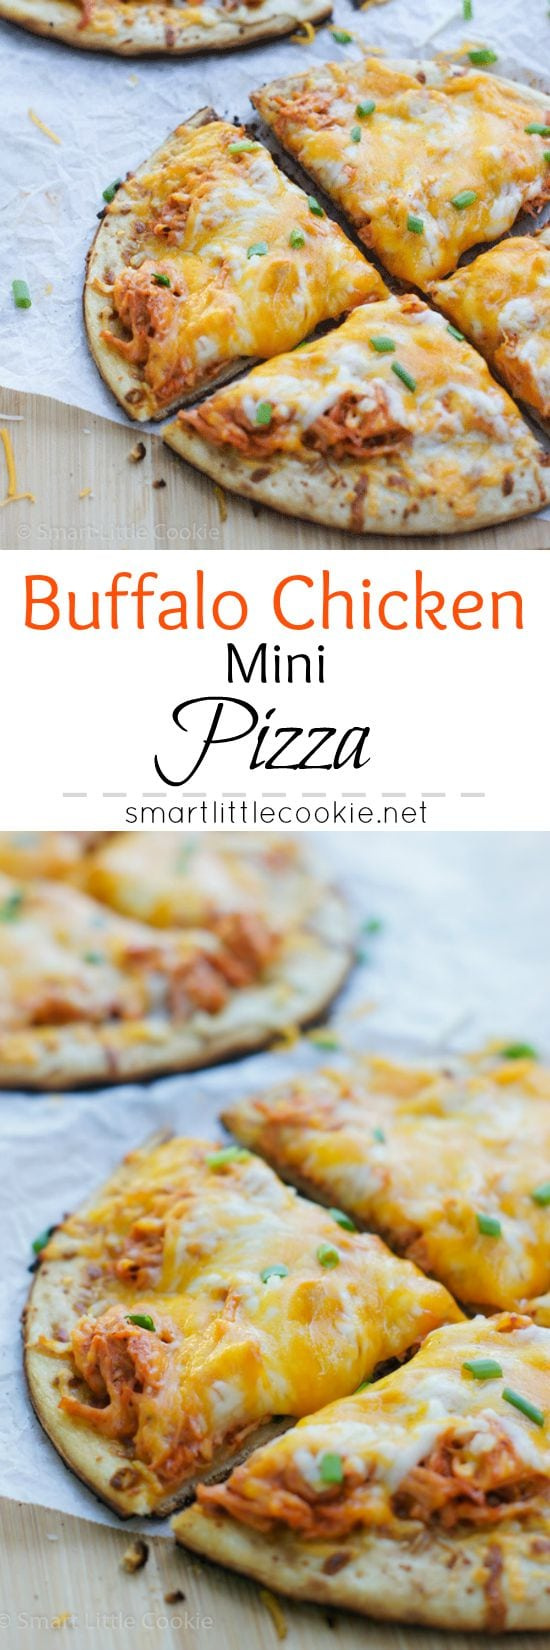 Buffalo Chicken Mini Pizza | smartlittlecookie.net